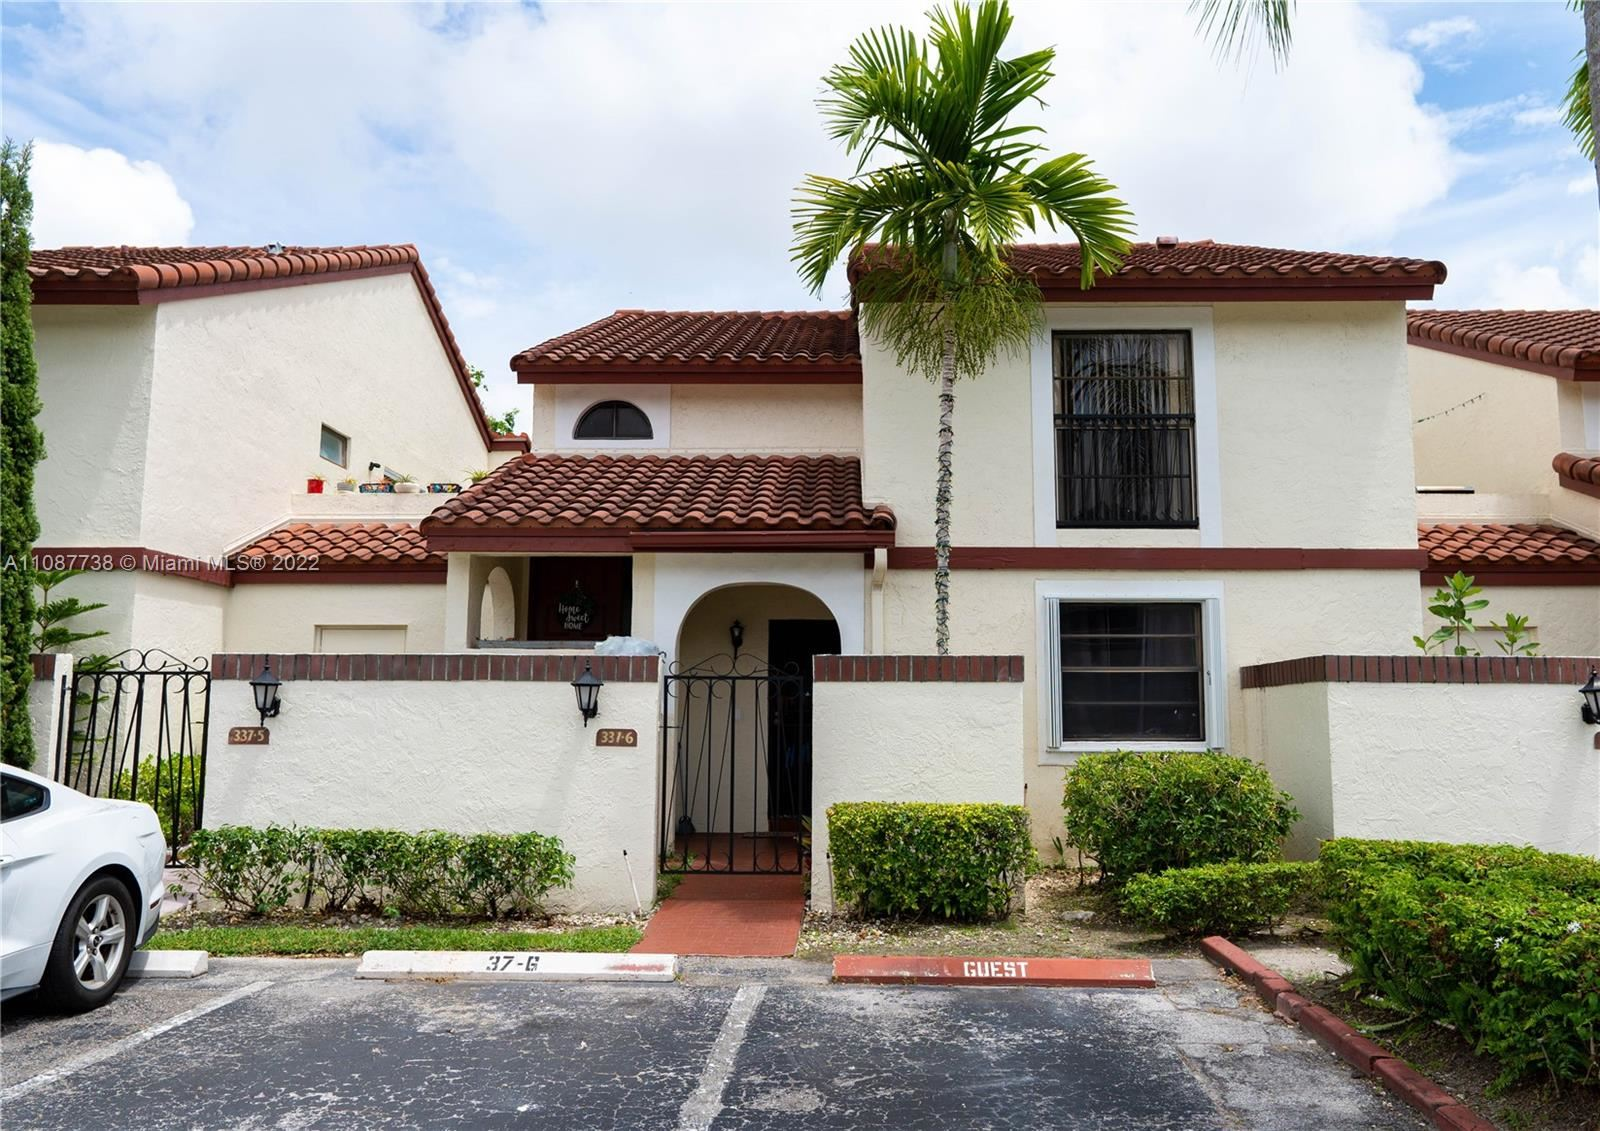 337 Ives Dairy Rd #337-06, Miami, FL 33179 - #: A11087738